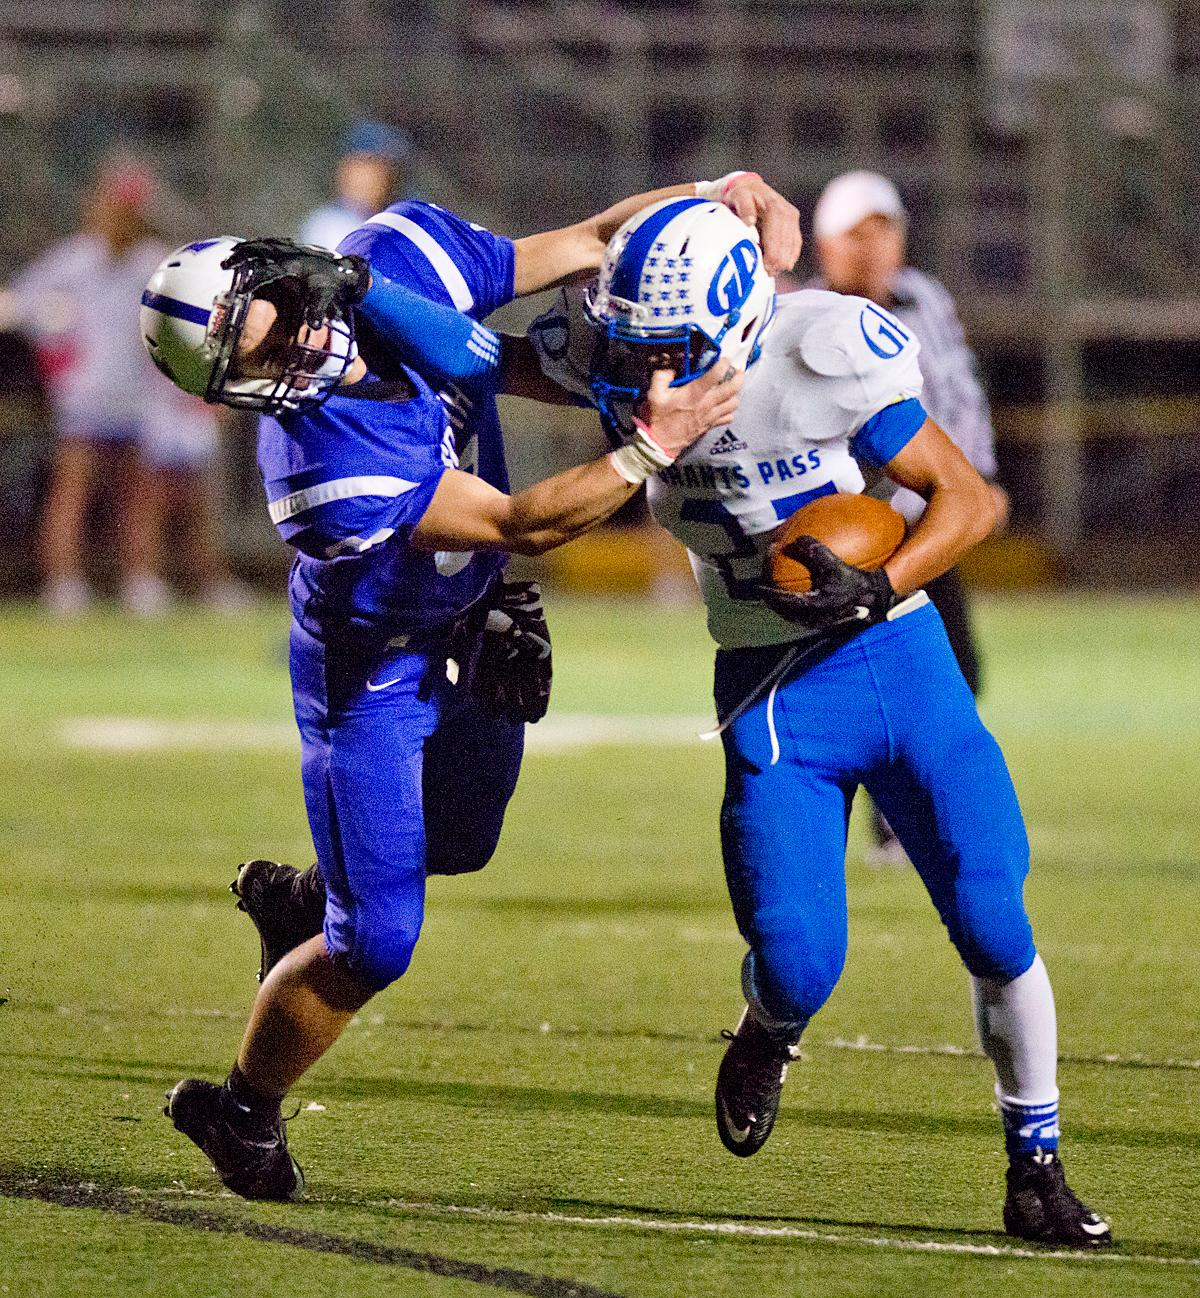 The South Axemen defender draws a face mask infraction on the Grants Pass Cavemen running back Adam Joham (#25). Grants Pass defeated South 13-6 at South's homecoming game. Photo by Dan Morrison, Oregon News Lab